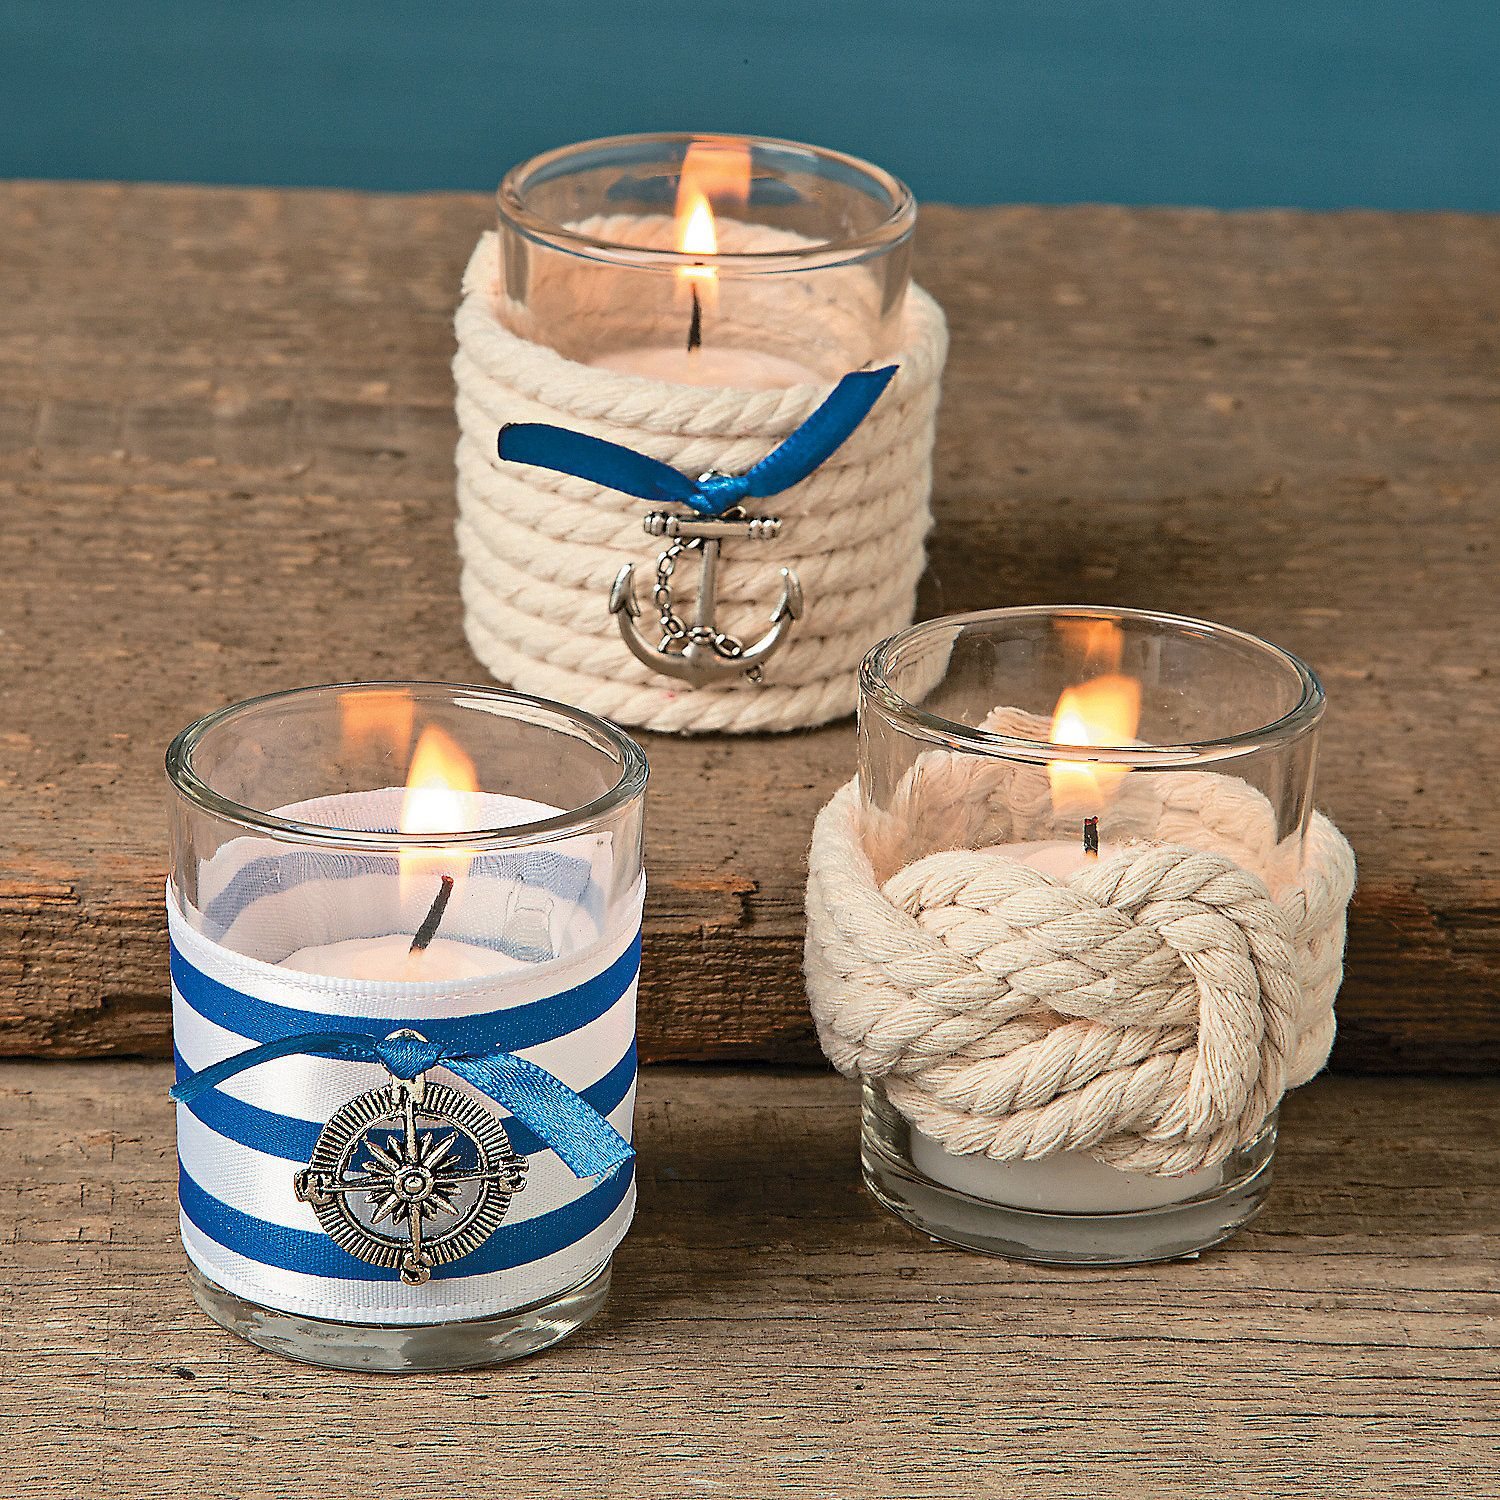 Nautical Decor Centerpieces: These Nautical Votive Holders Are A Must For Your Nautical